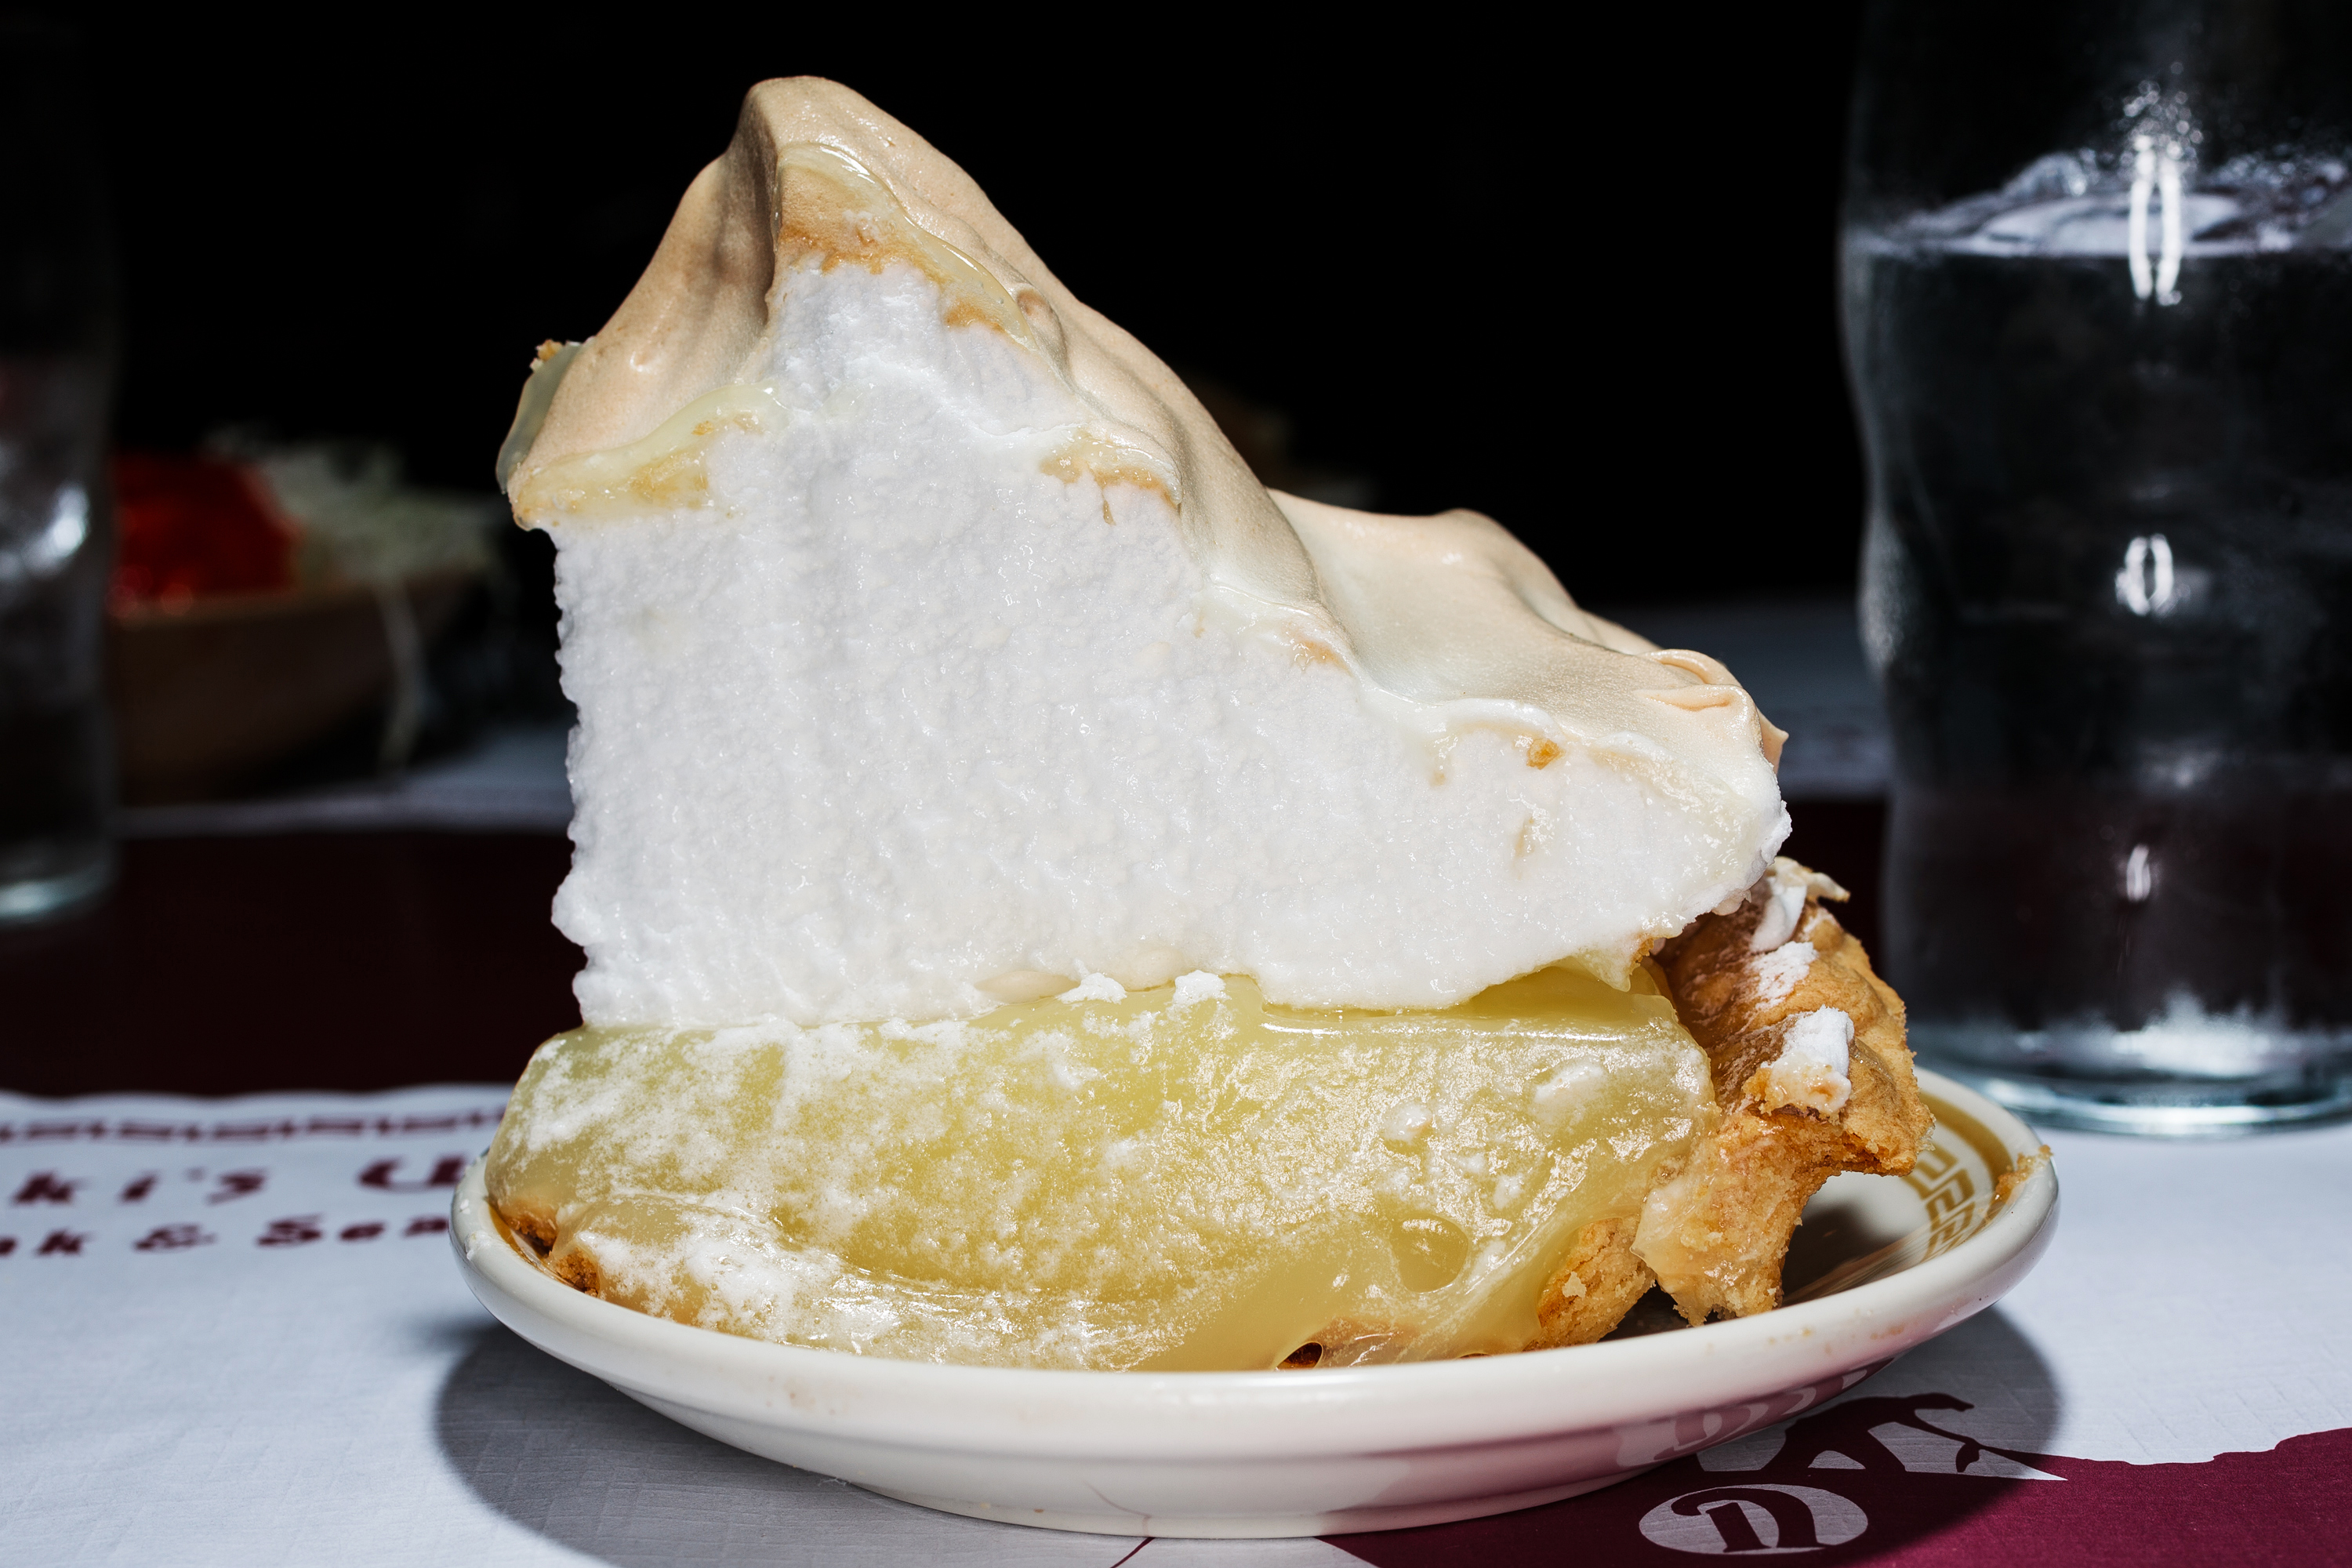 Lemon meringue pie at Niki's West in Birmingham, Ala.